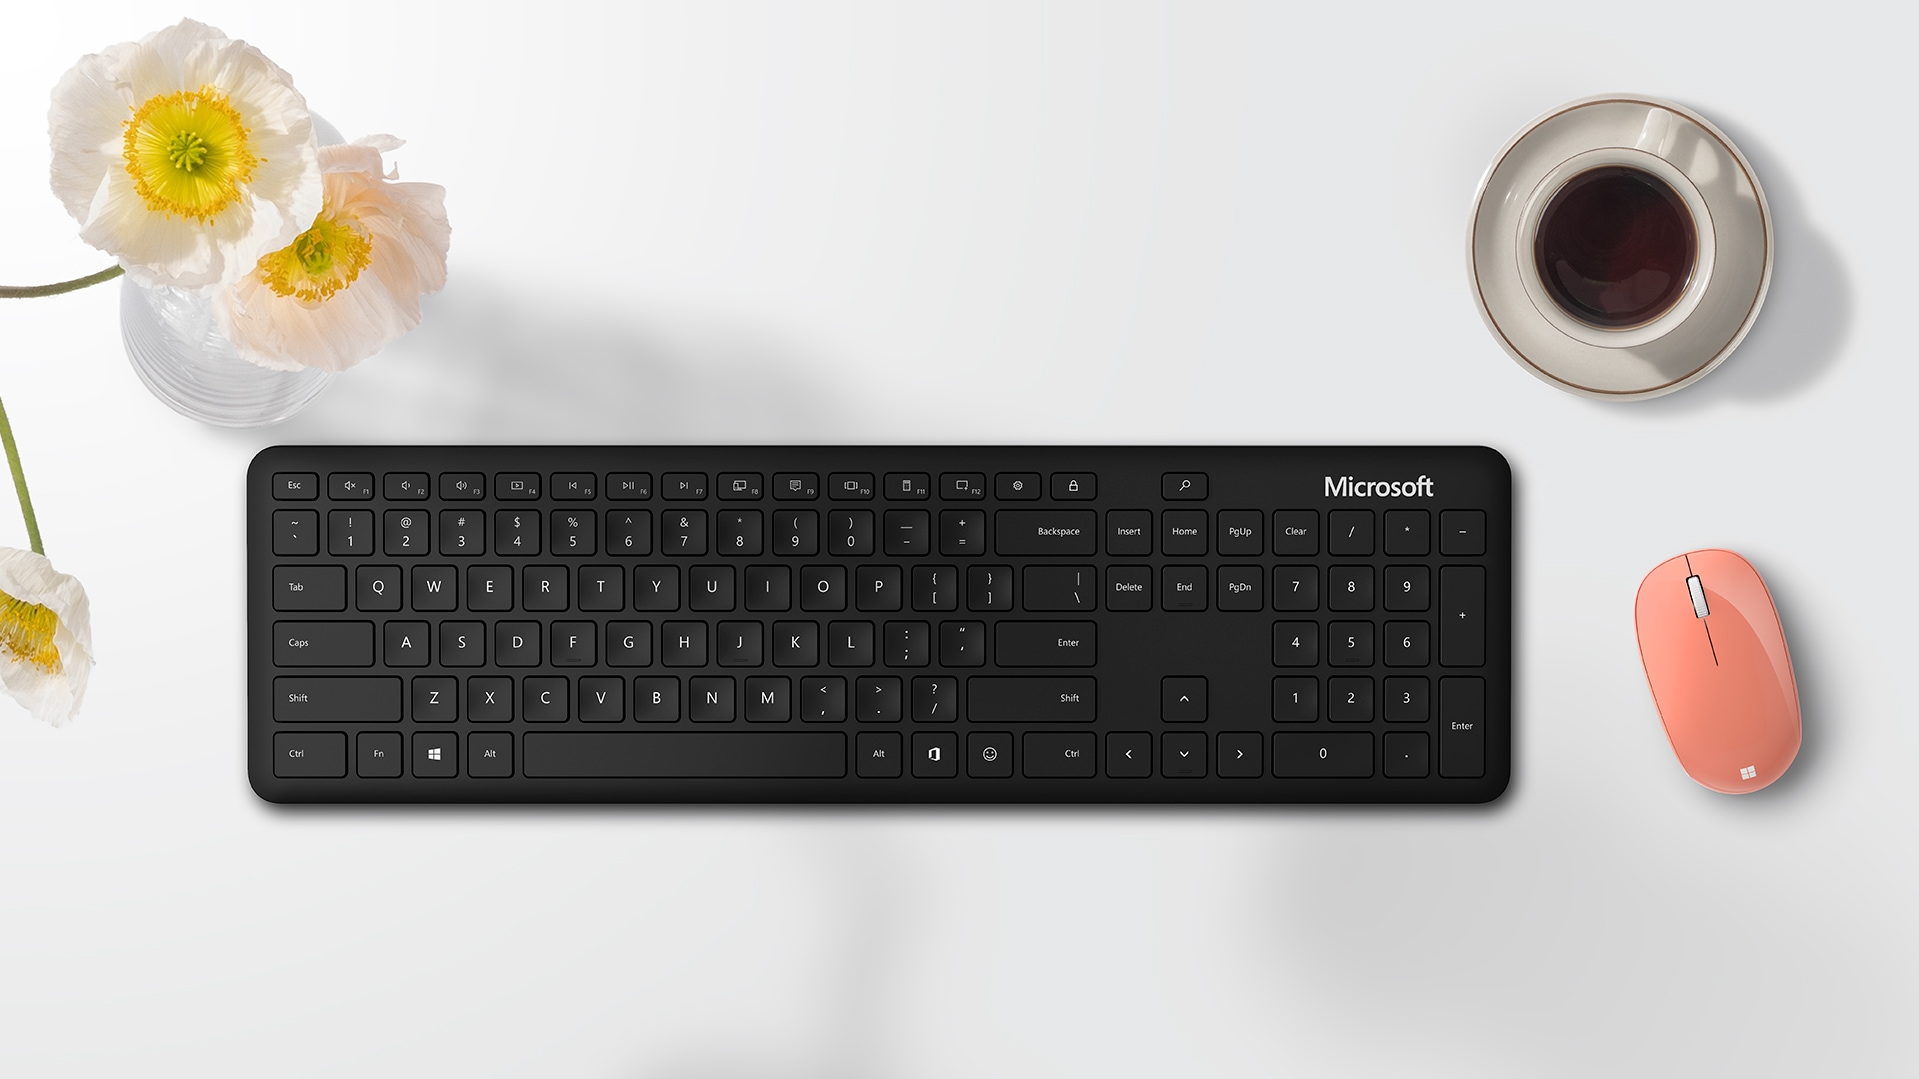 A Microsoft Bluetooth® Keyboard and a Microsoft Bluetooth® Mouse sit on a desk.